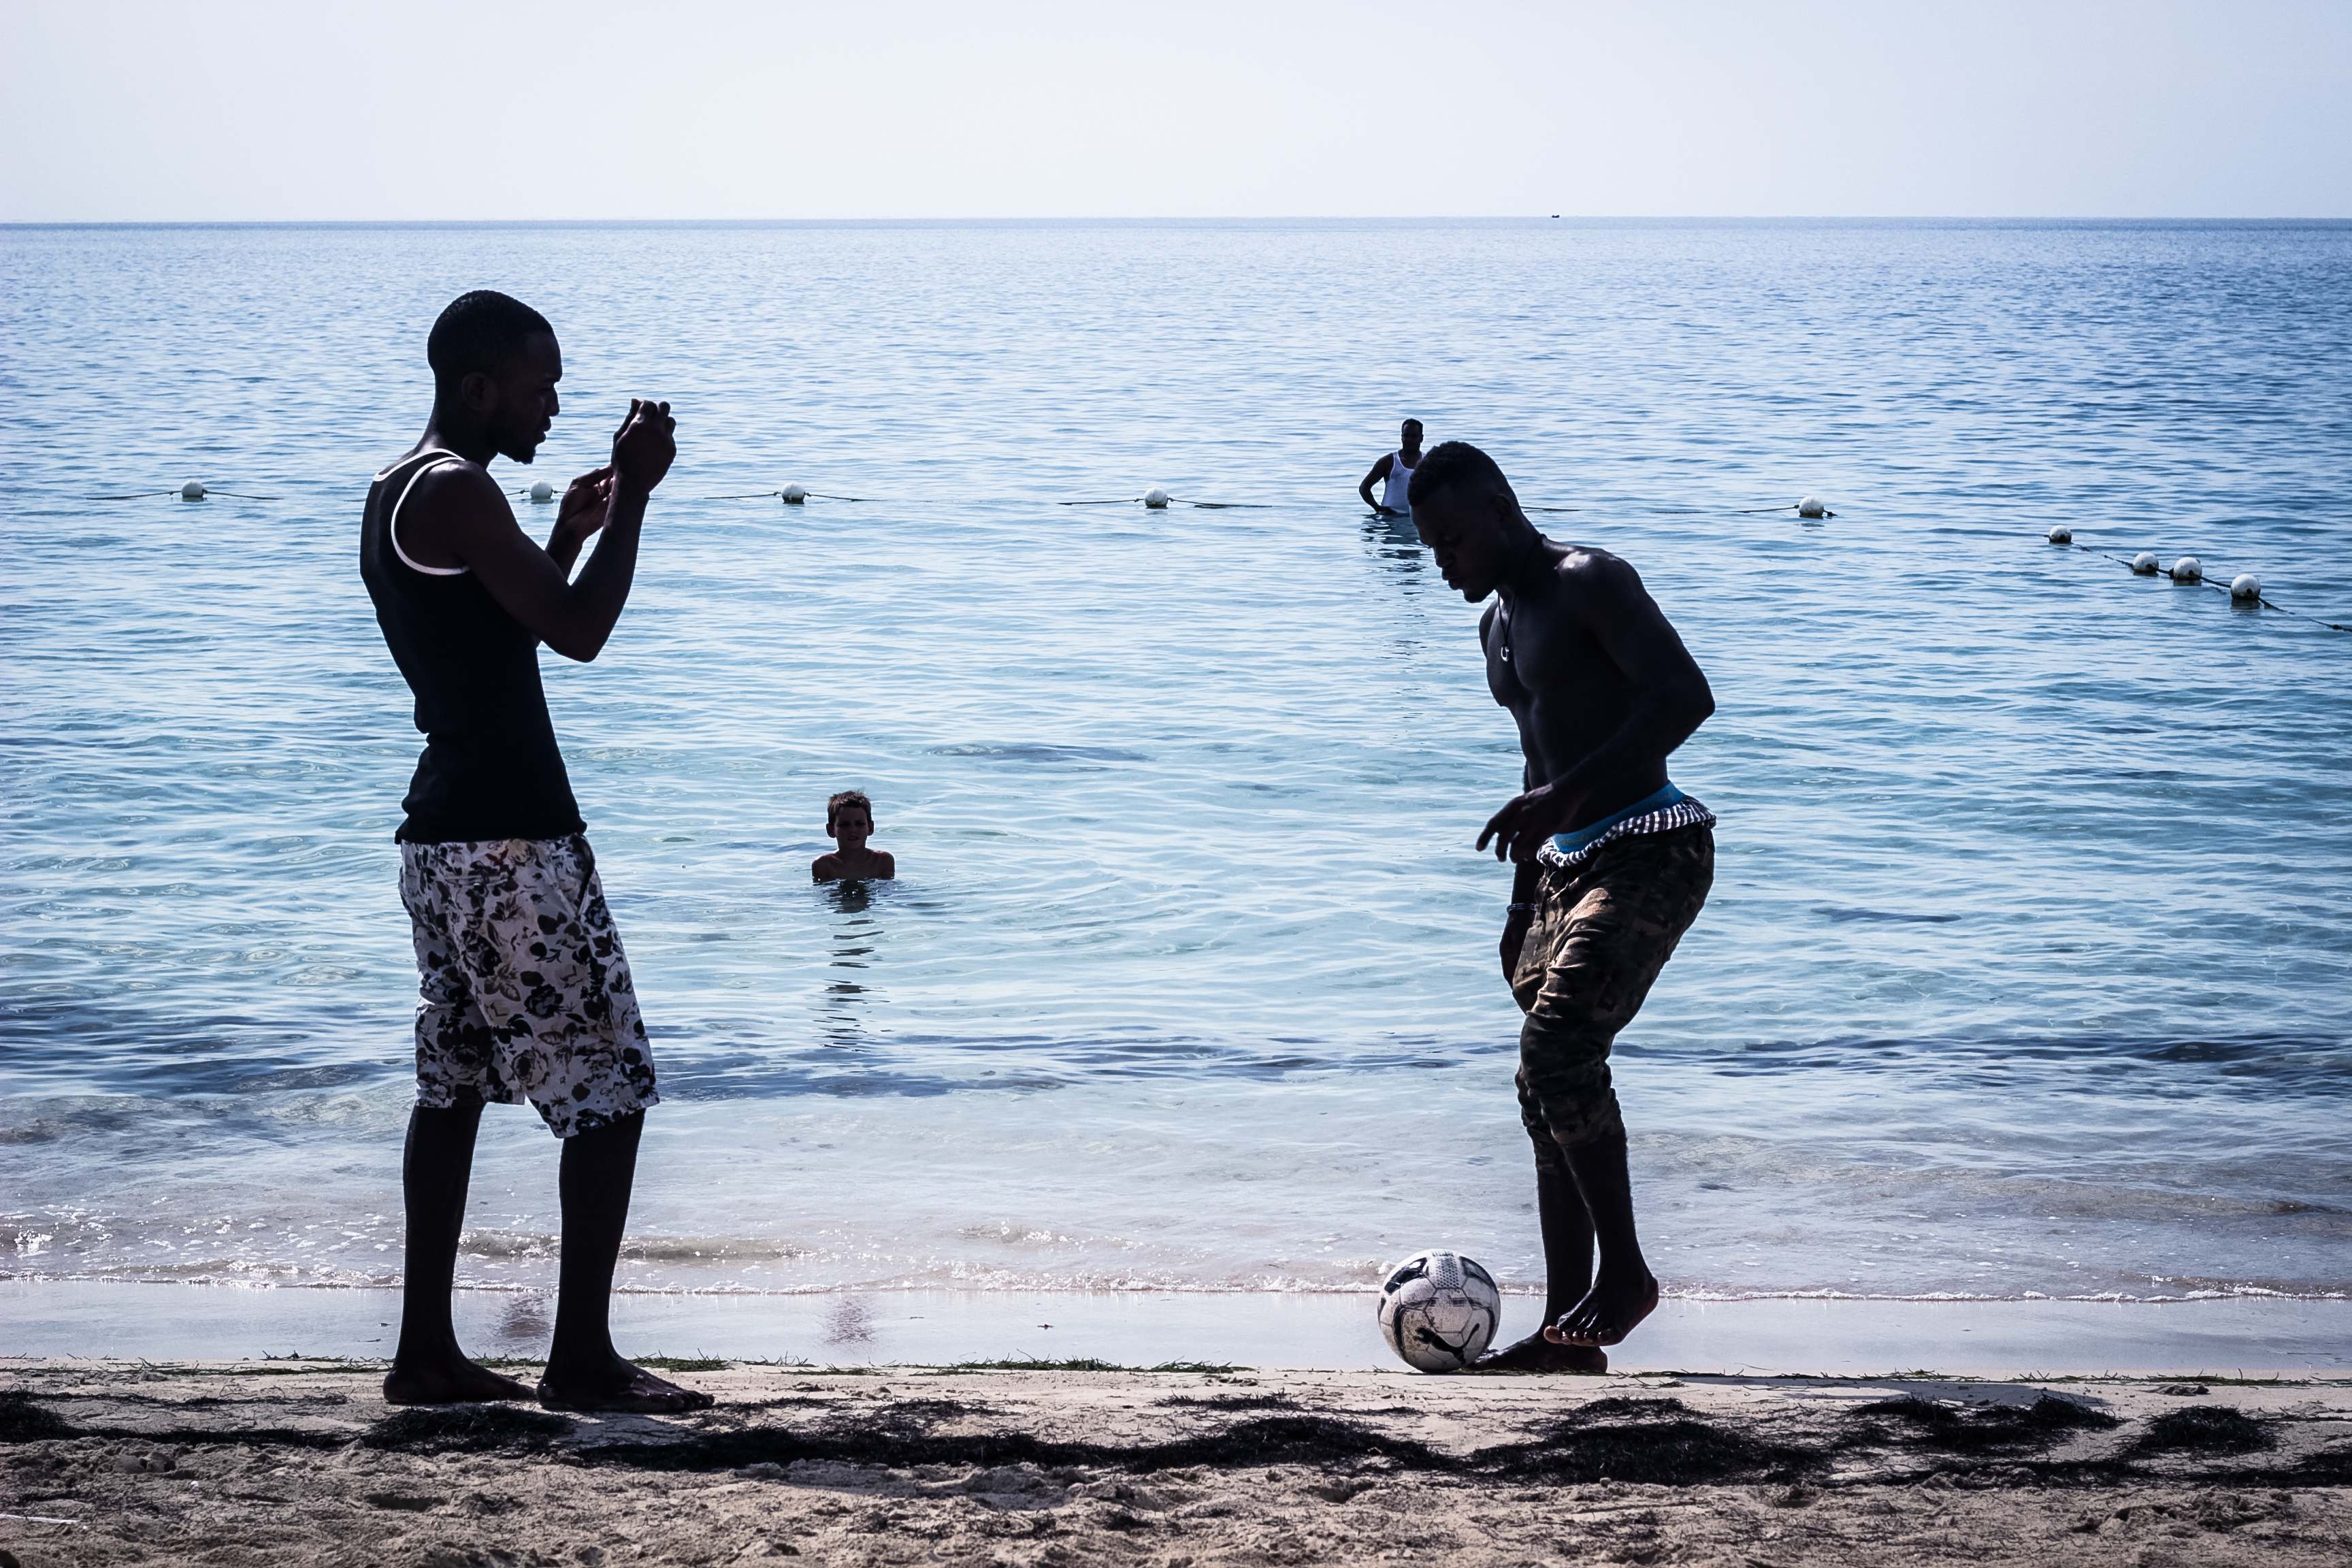 men play football on a beach in Negrill